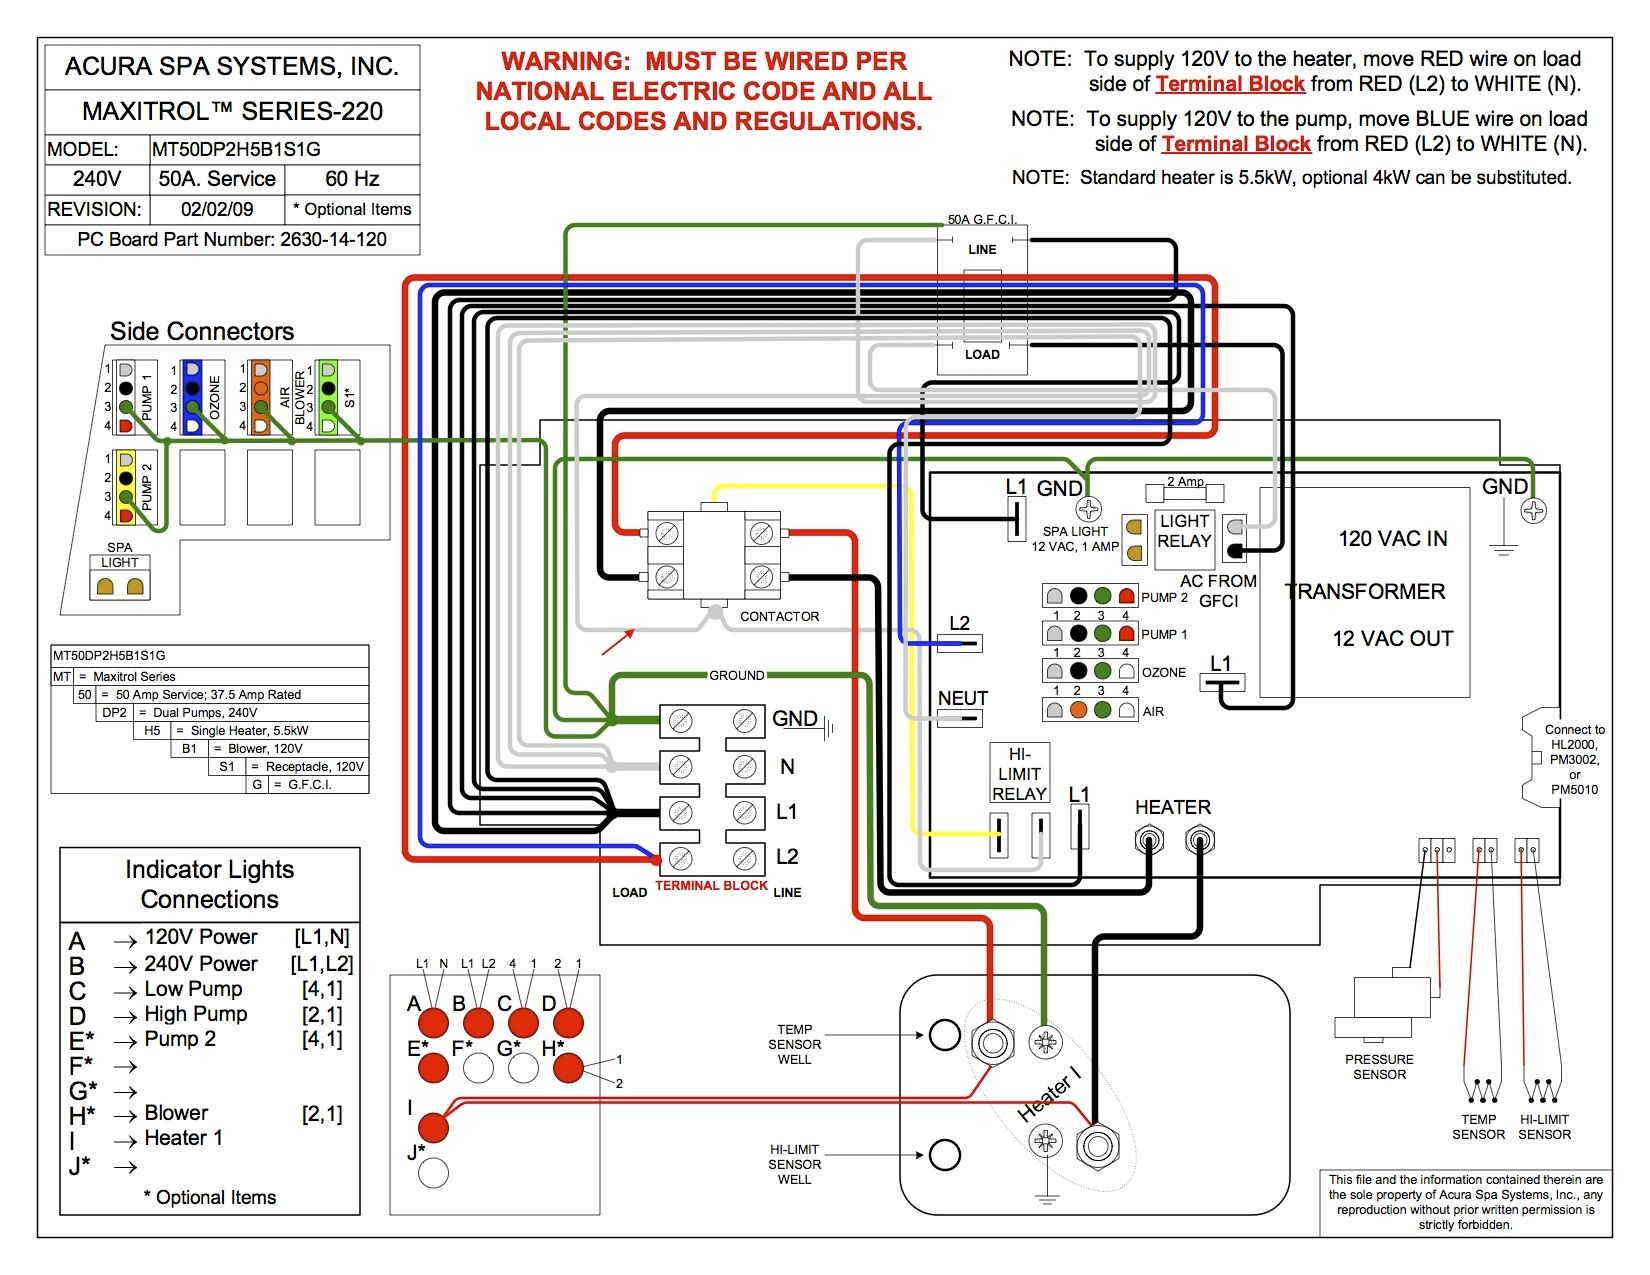 Acura Megatrol Wiring Diagram MT50DP2H5B1S1G Twinsprings Research